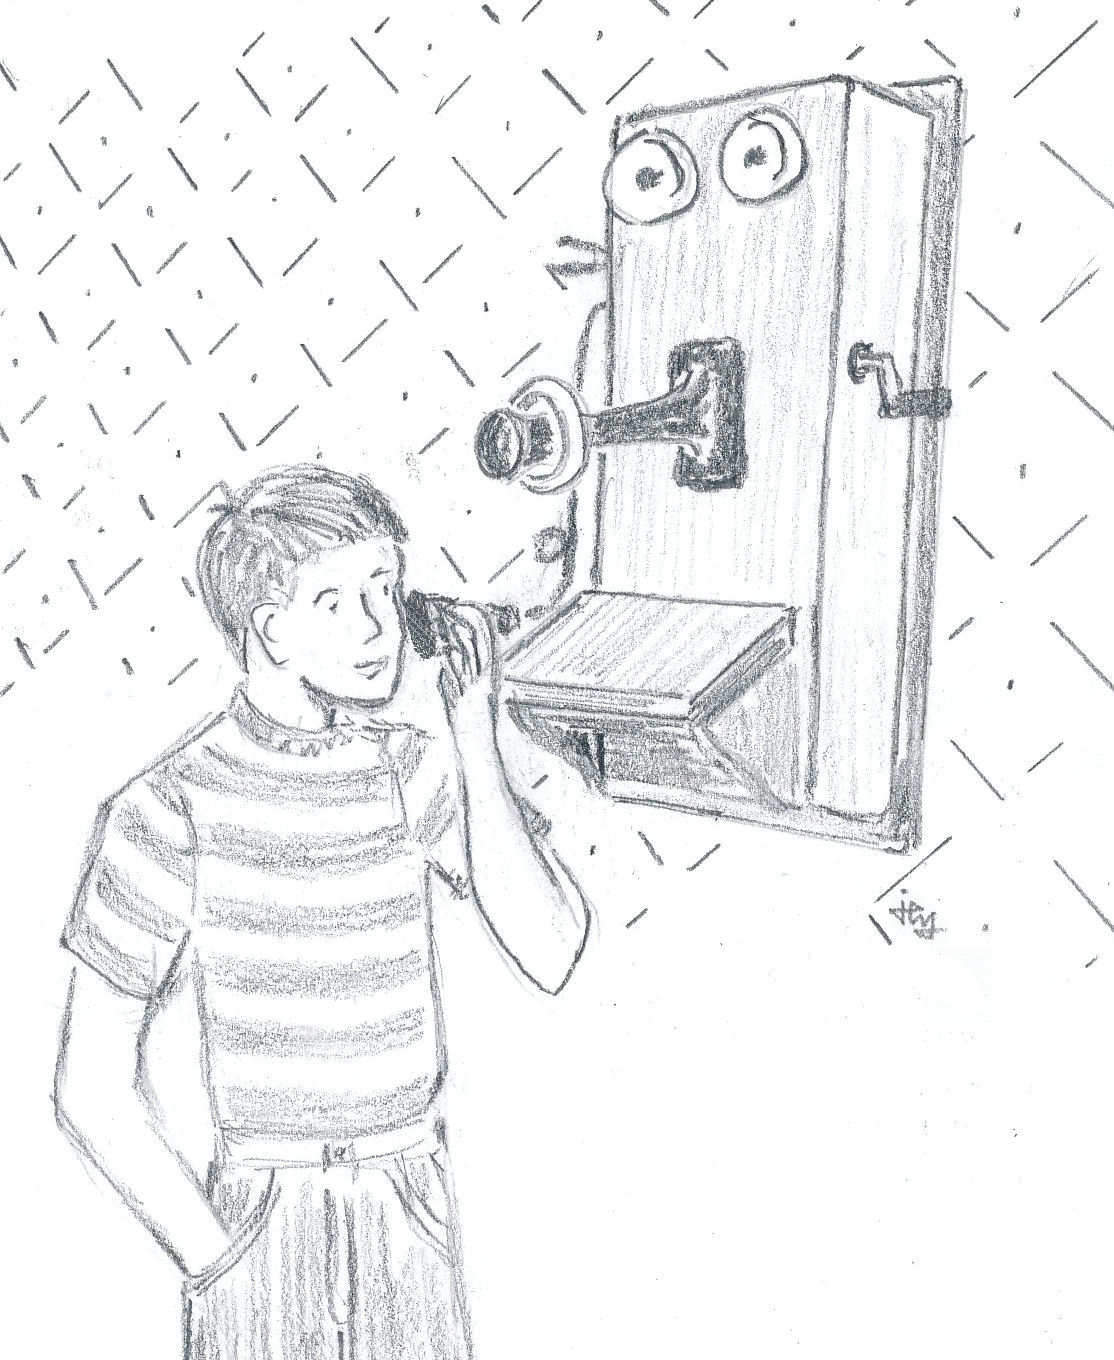 drawing of a boy using a wooden crank wall telephone for the children's book The Hitchhiker